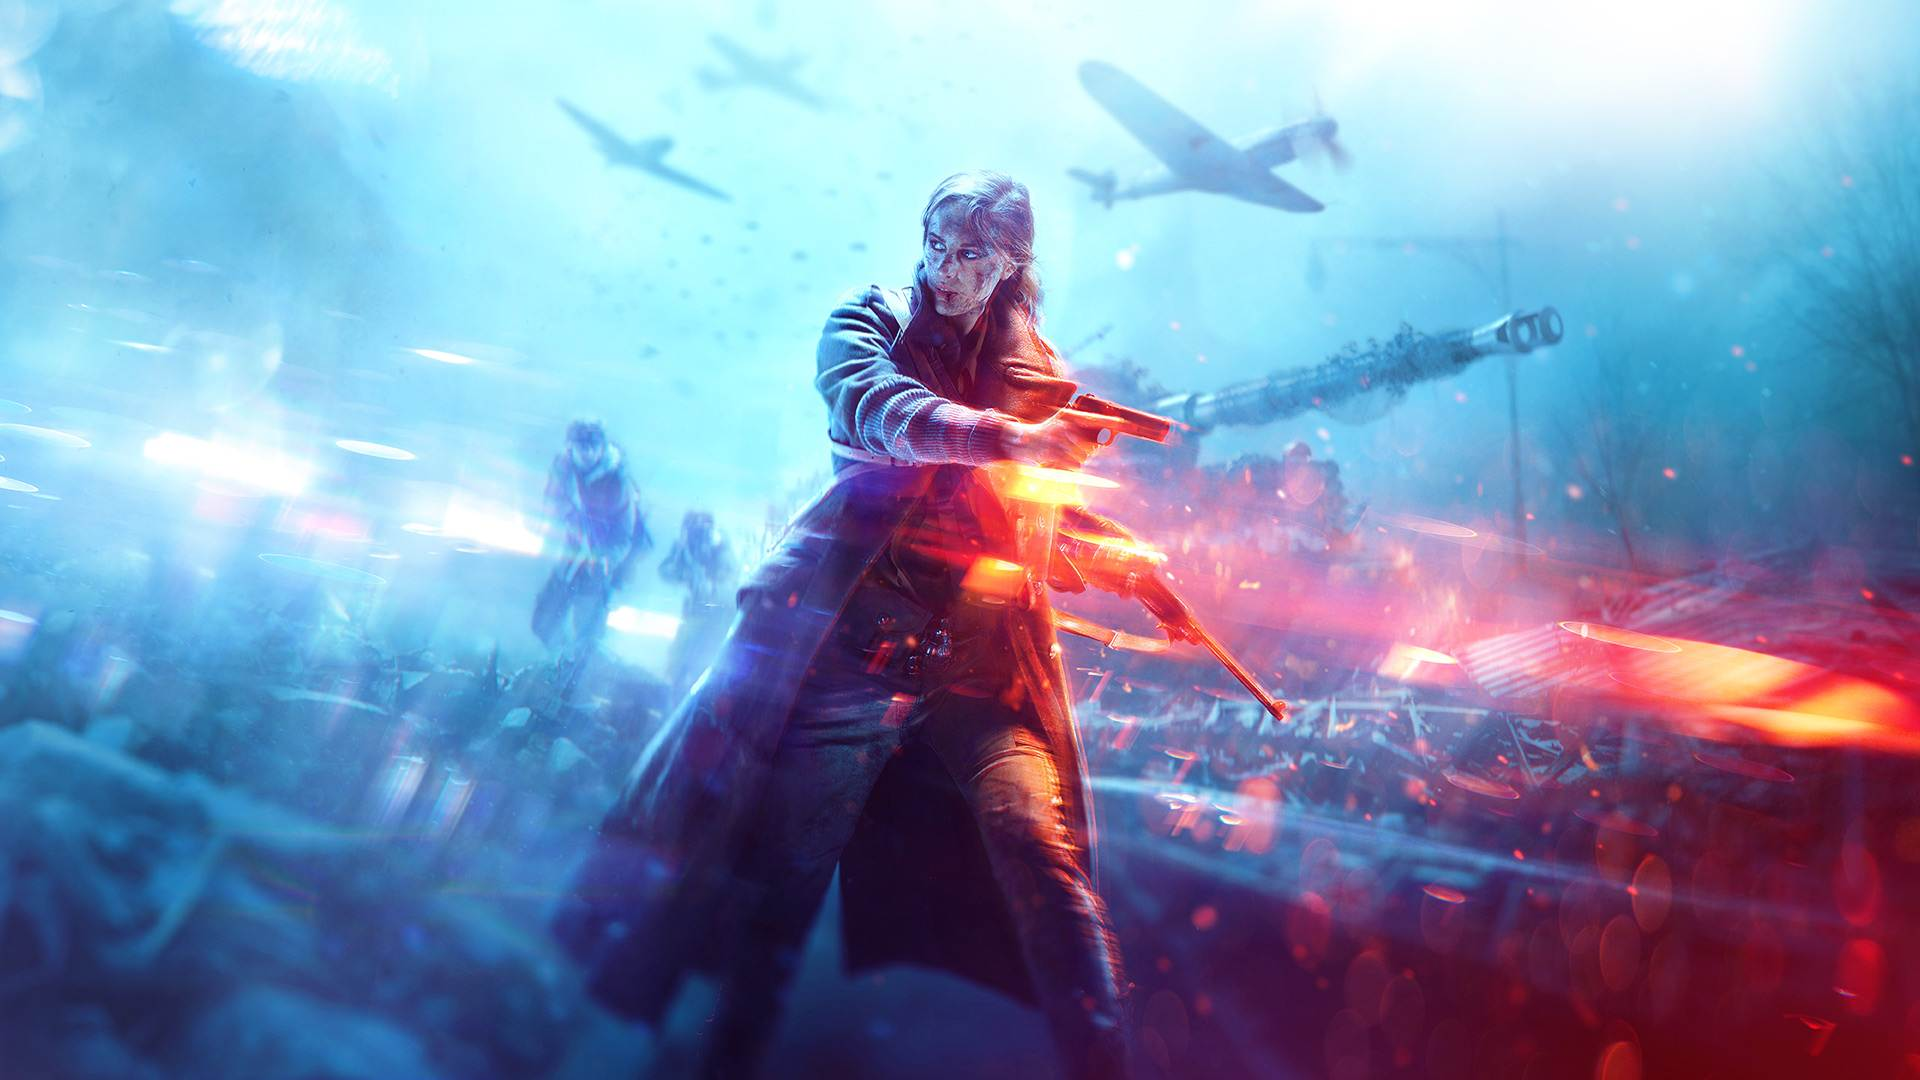 The next Battlefield is coming later this year, with a reveal coming 'soon' screenshot